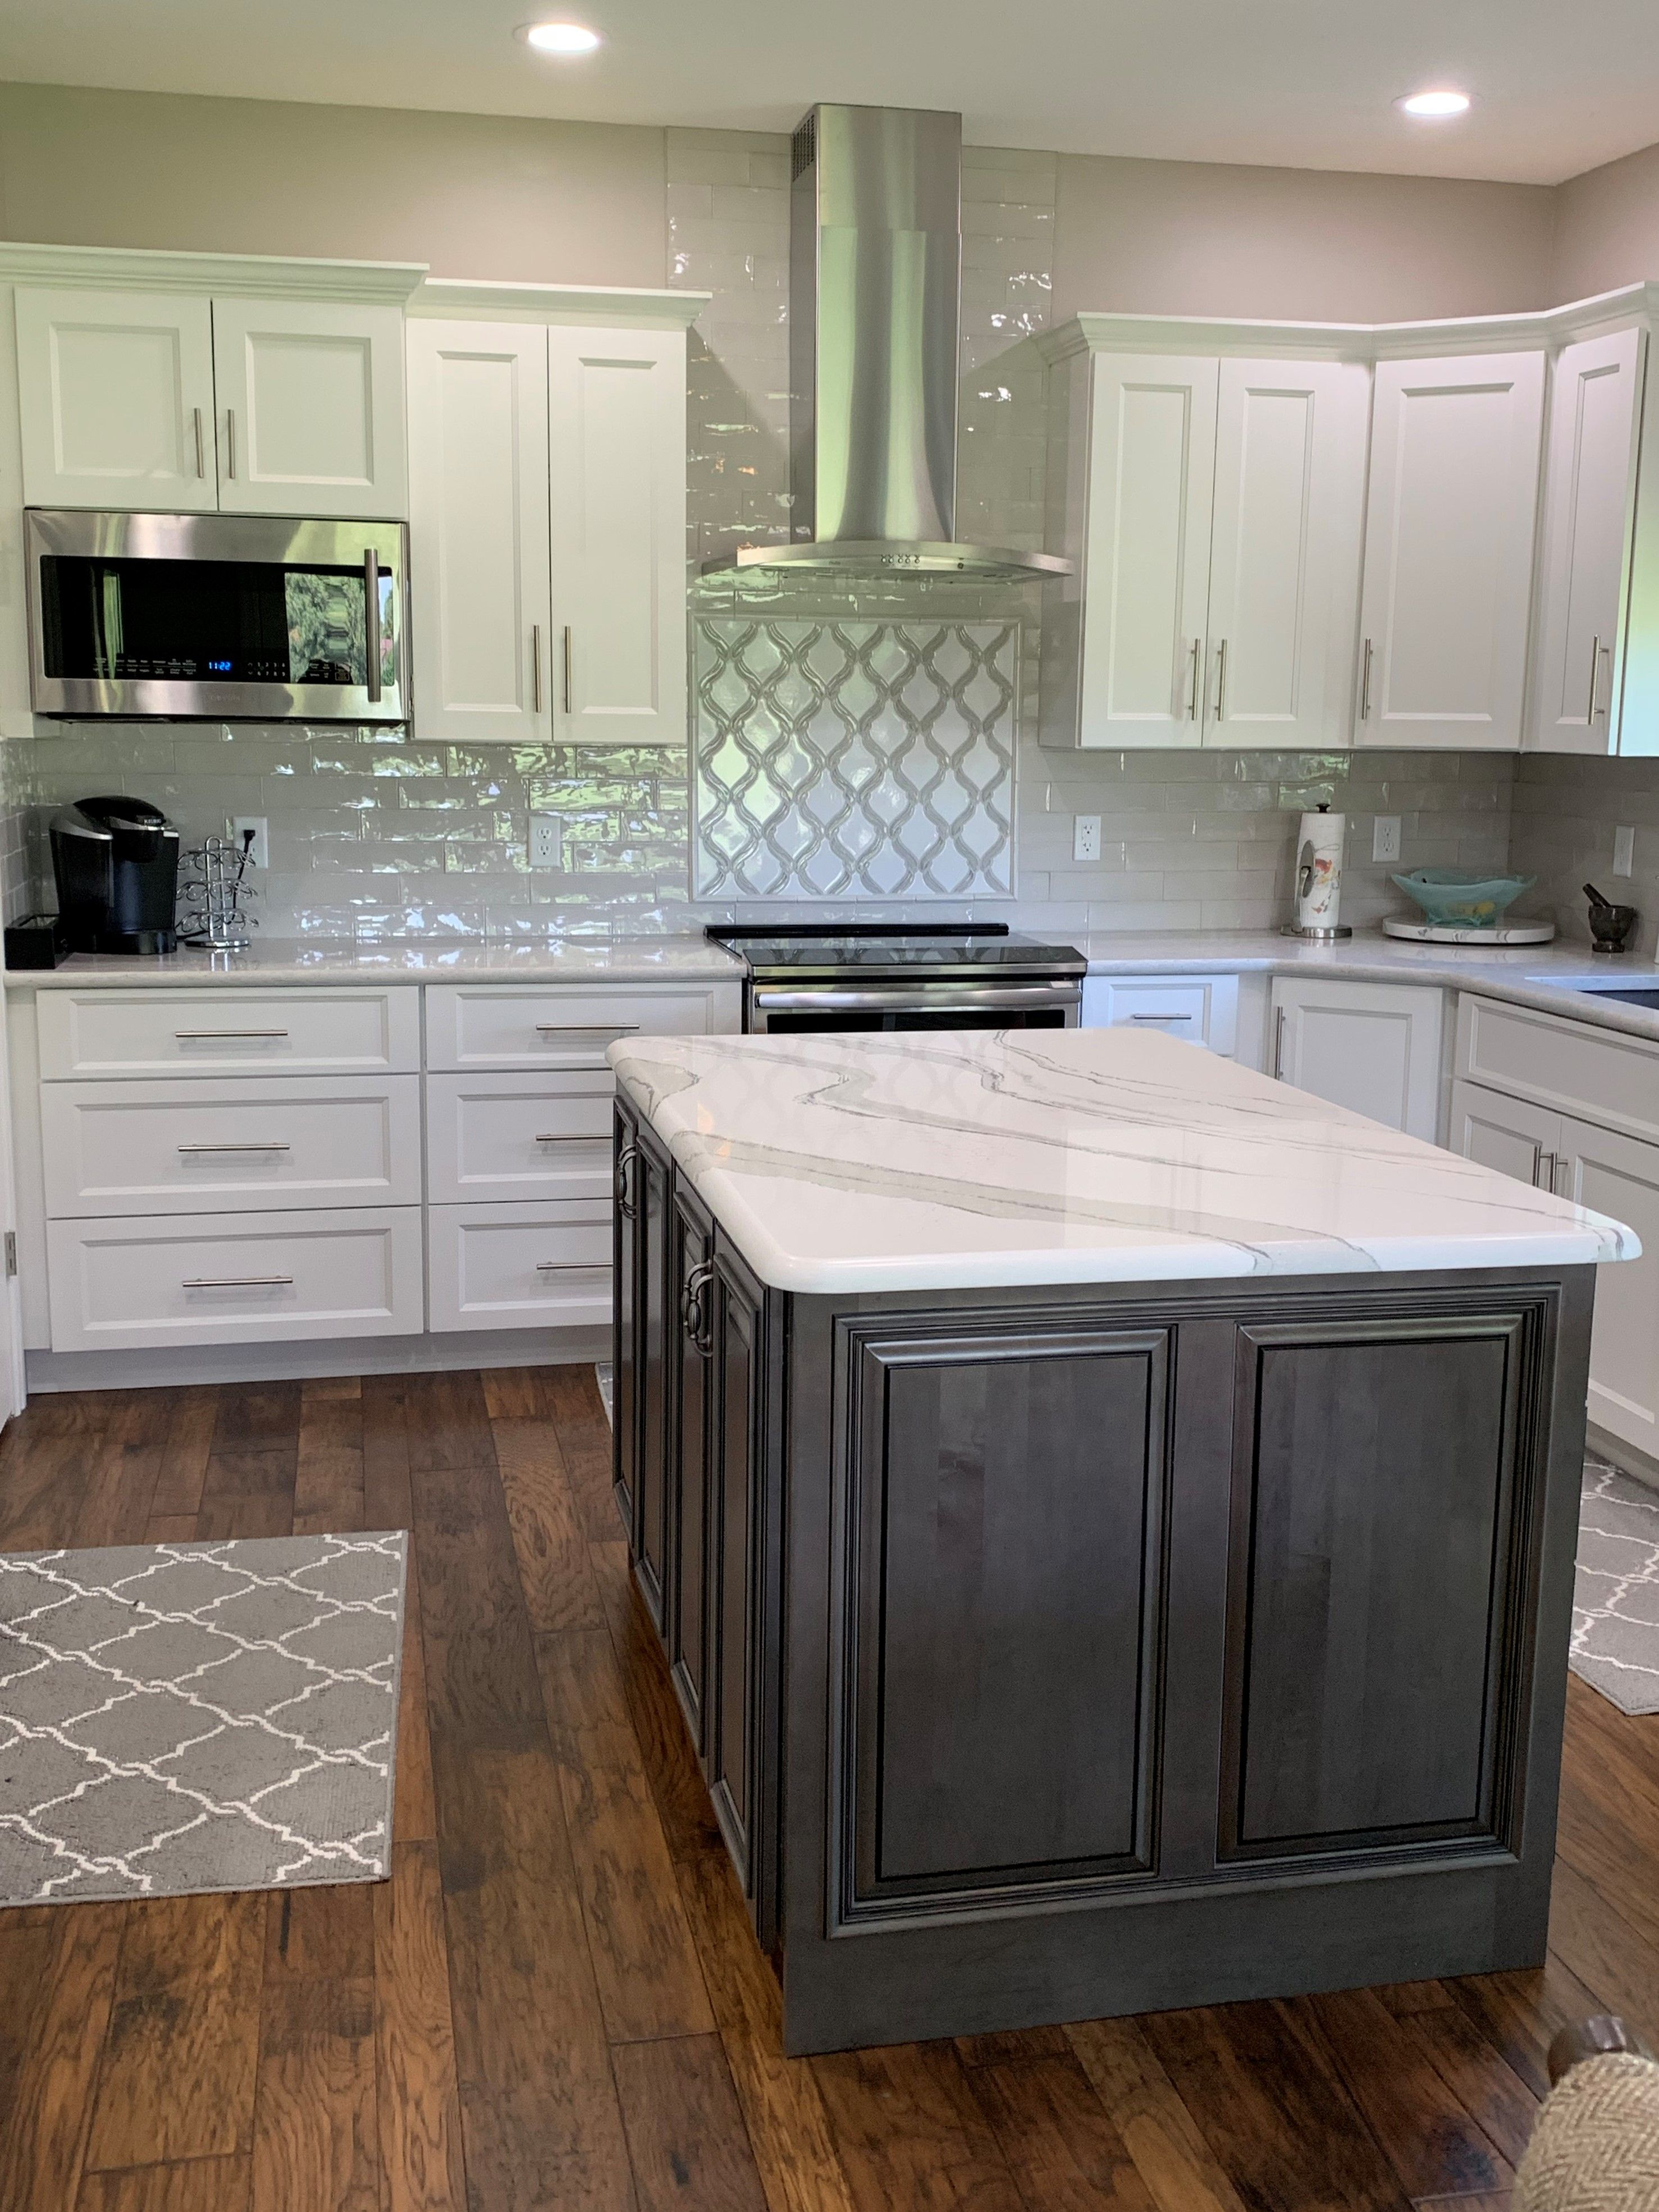 National Service Custom Cabinets Kitchen Tune Up Kitchen Without Wall Cabinets Cheap Kitchen Remodel Kitchen Cabinet Remodel